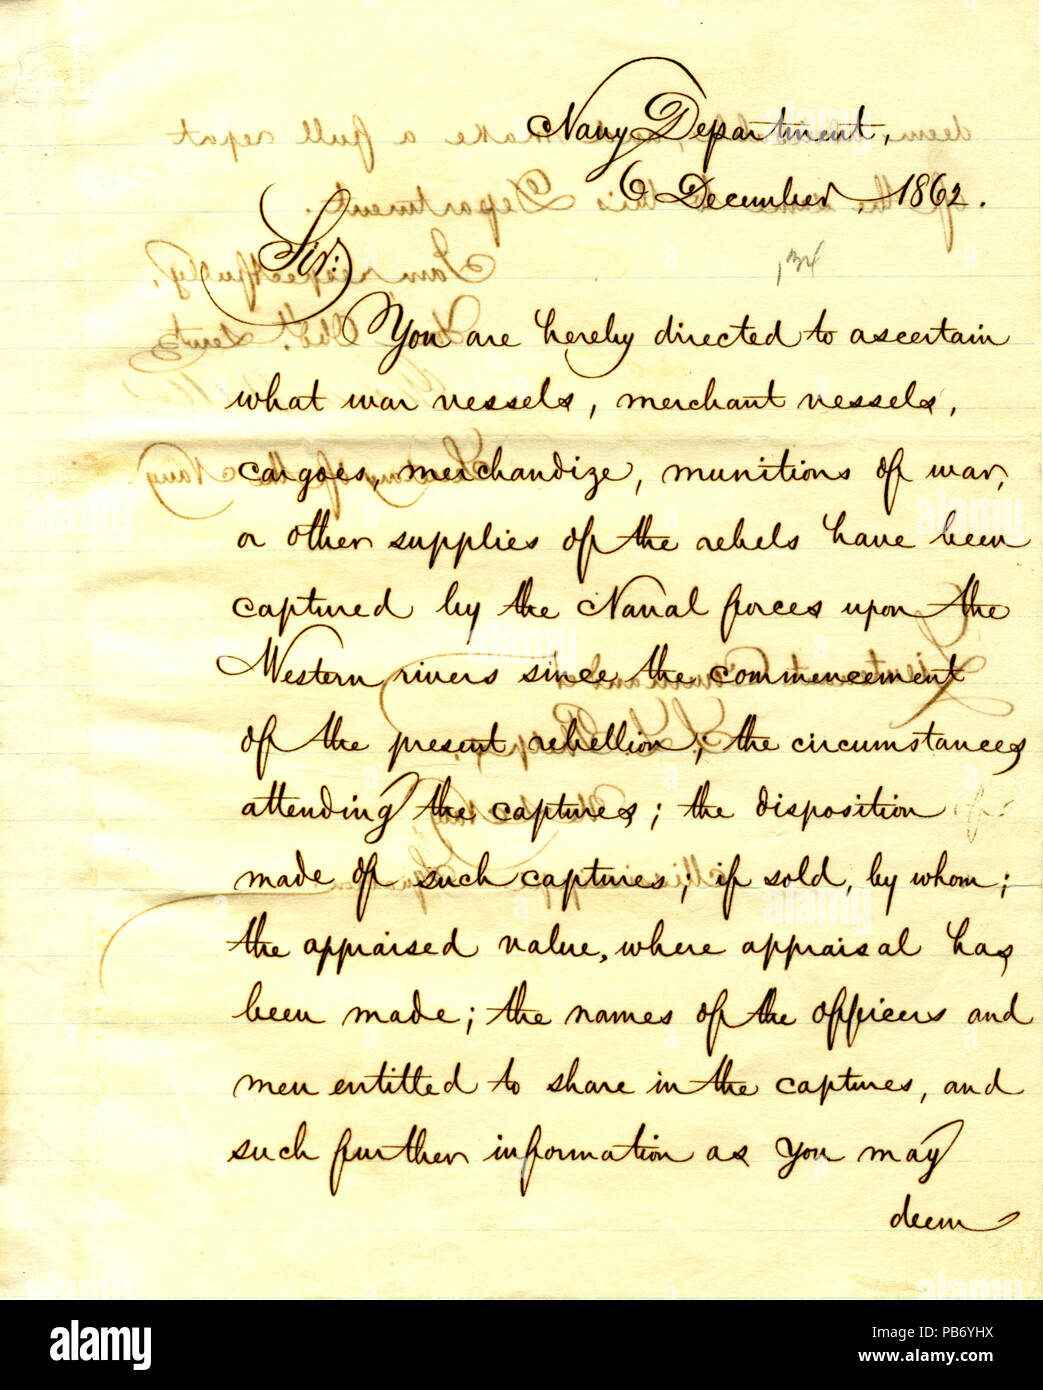 901 Letter from Gideon Welles to Seth Ledyard Phelps, December 6, 1862 - Stock Image